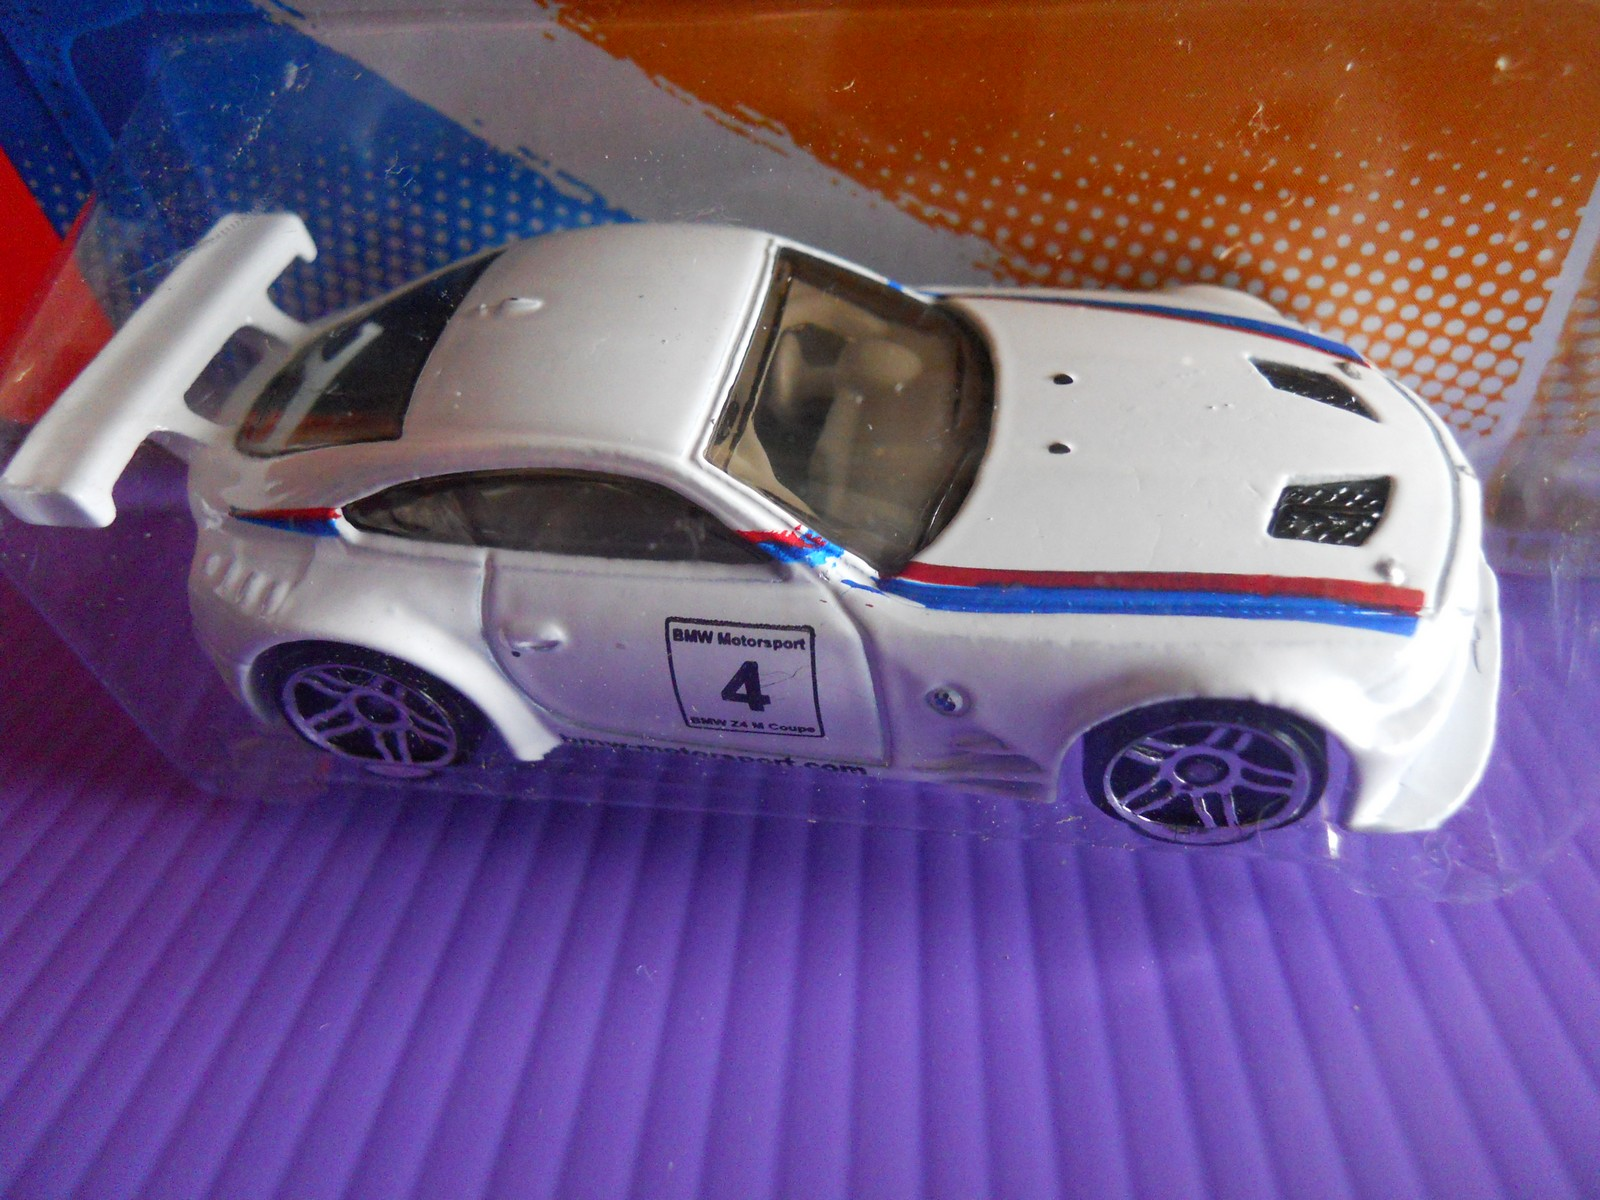 Dexters Diecasts Dexdc Hot Wheels 2012 18 Bmw Z4 M White